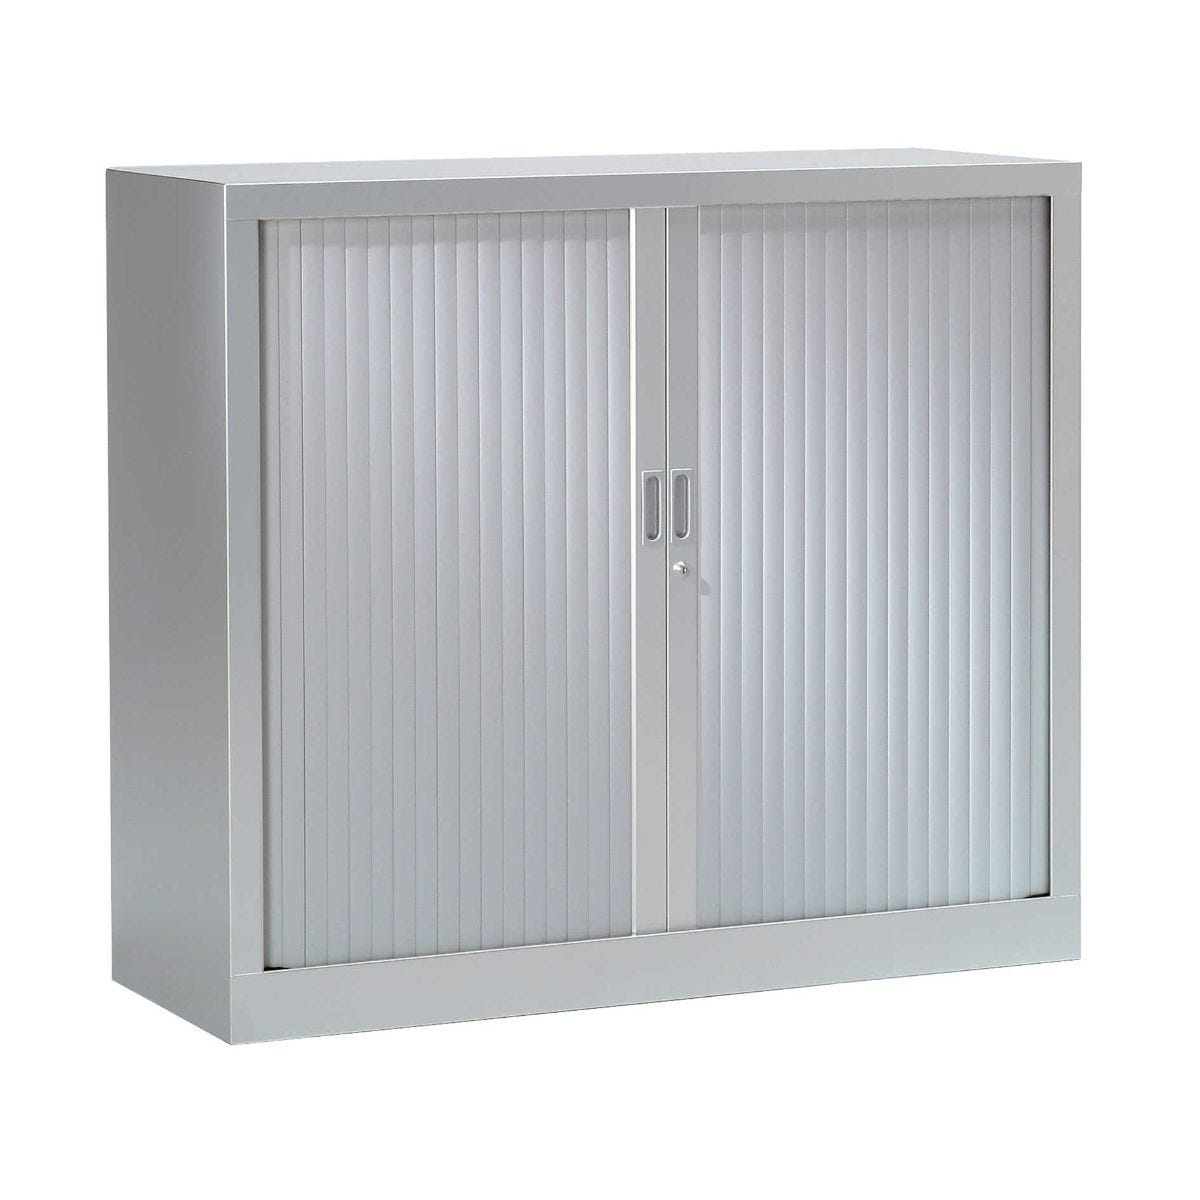 Generic Tambour Cupboard Height 1000mm, Silver